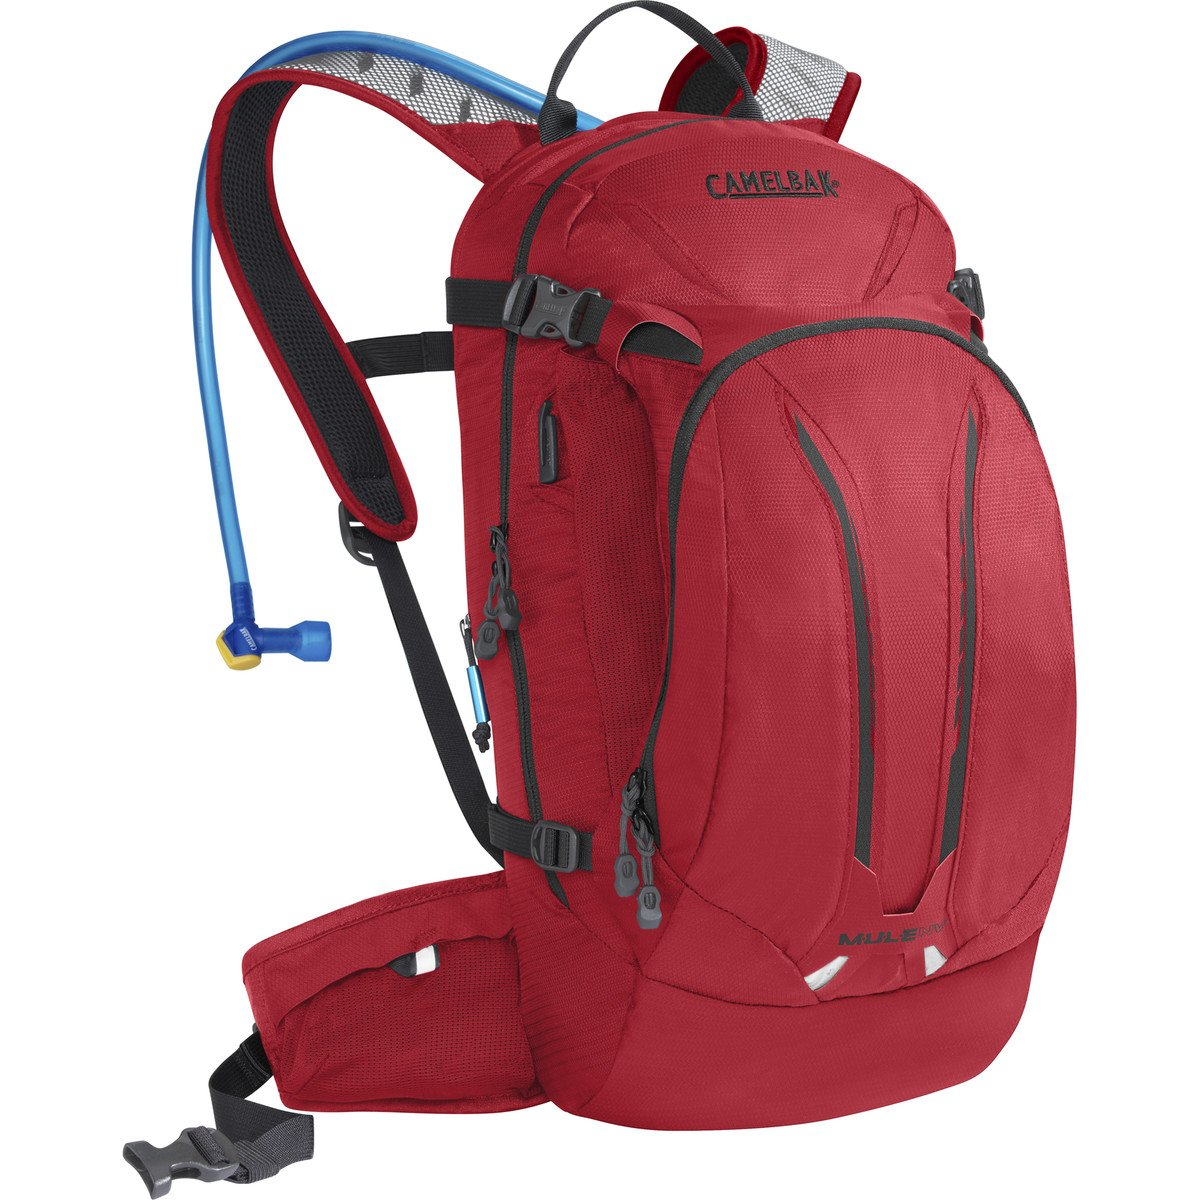 Camelbak Mule Lowrider Hydration Backpack 15 Litres- Fenix Toulouse ... a14c1a9c326b9